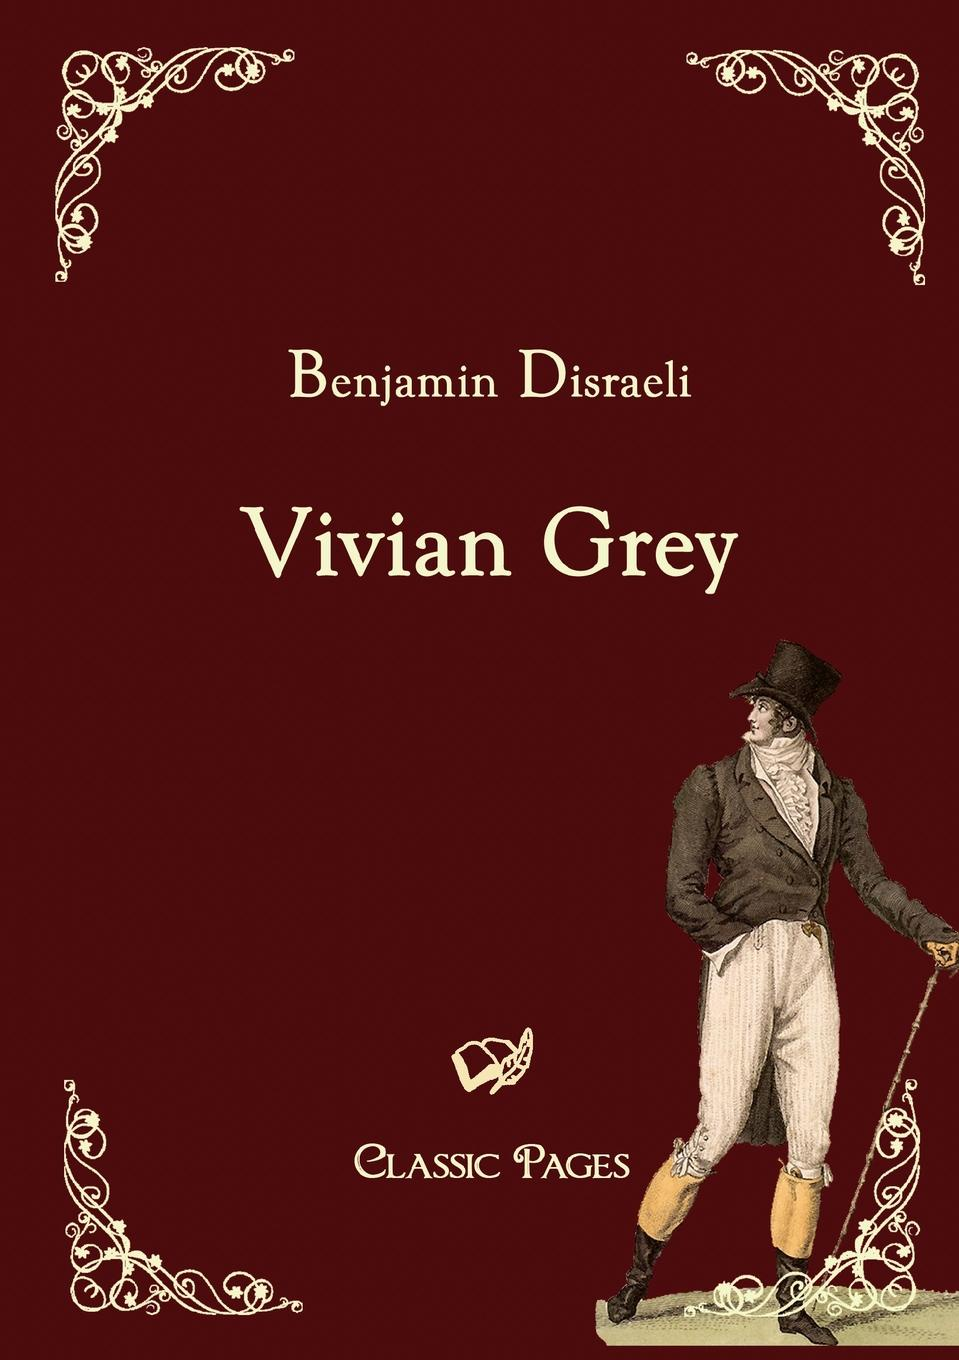 Benjamin Disraeli Vivian Grey siobhan vivian the list